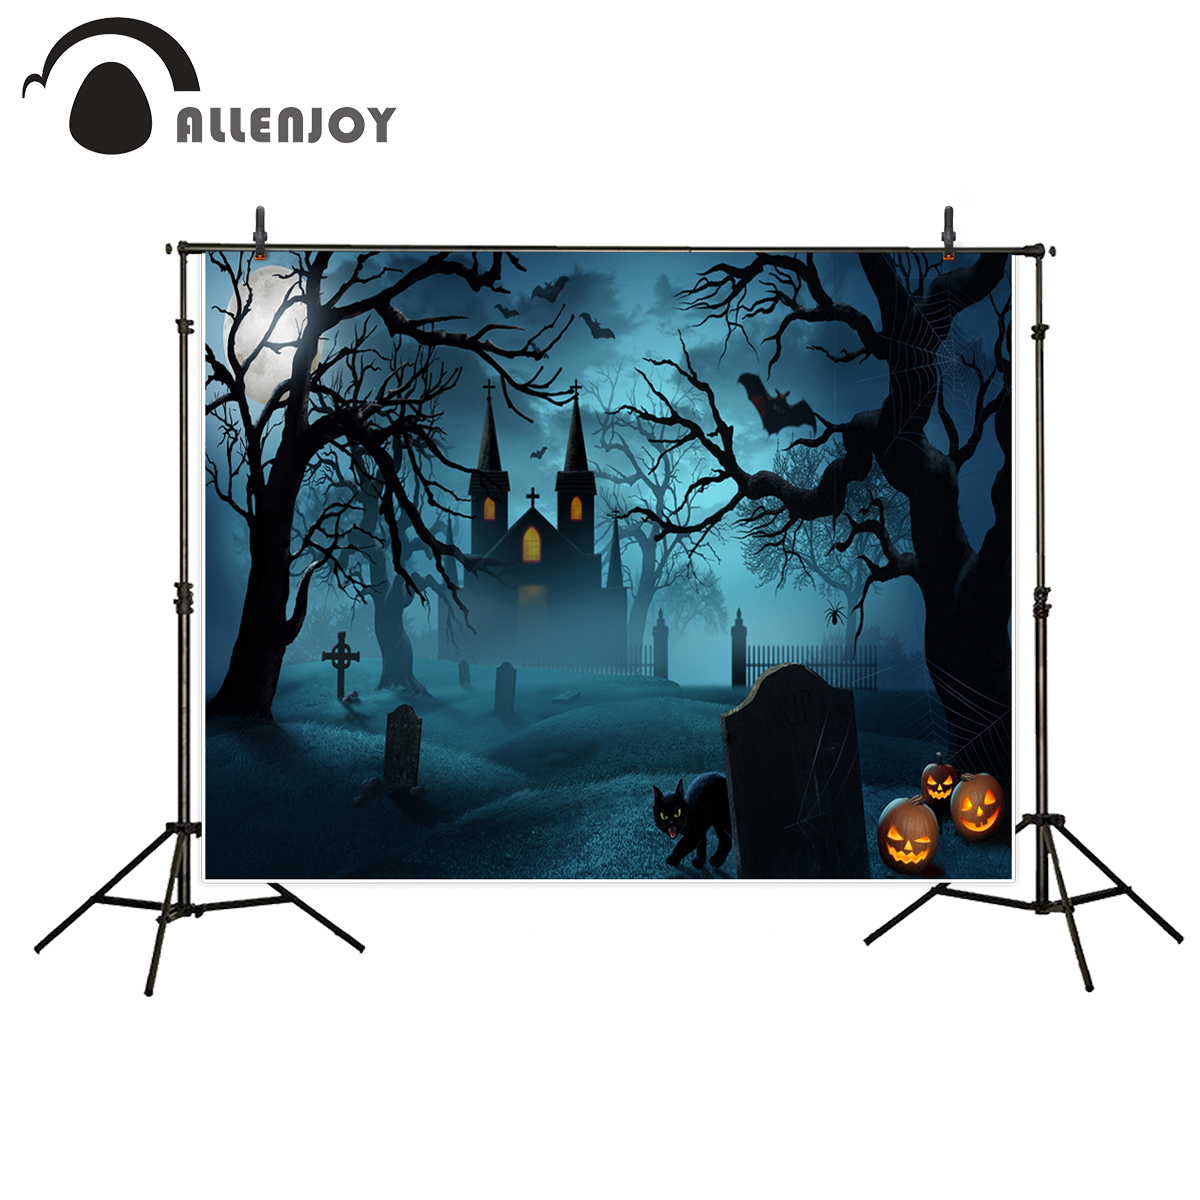 Allenjoy photo background Halloween castle in night tombs moon forest crows pumpkin lamp horrible Photostudio For a photo shoot six crows